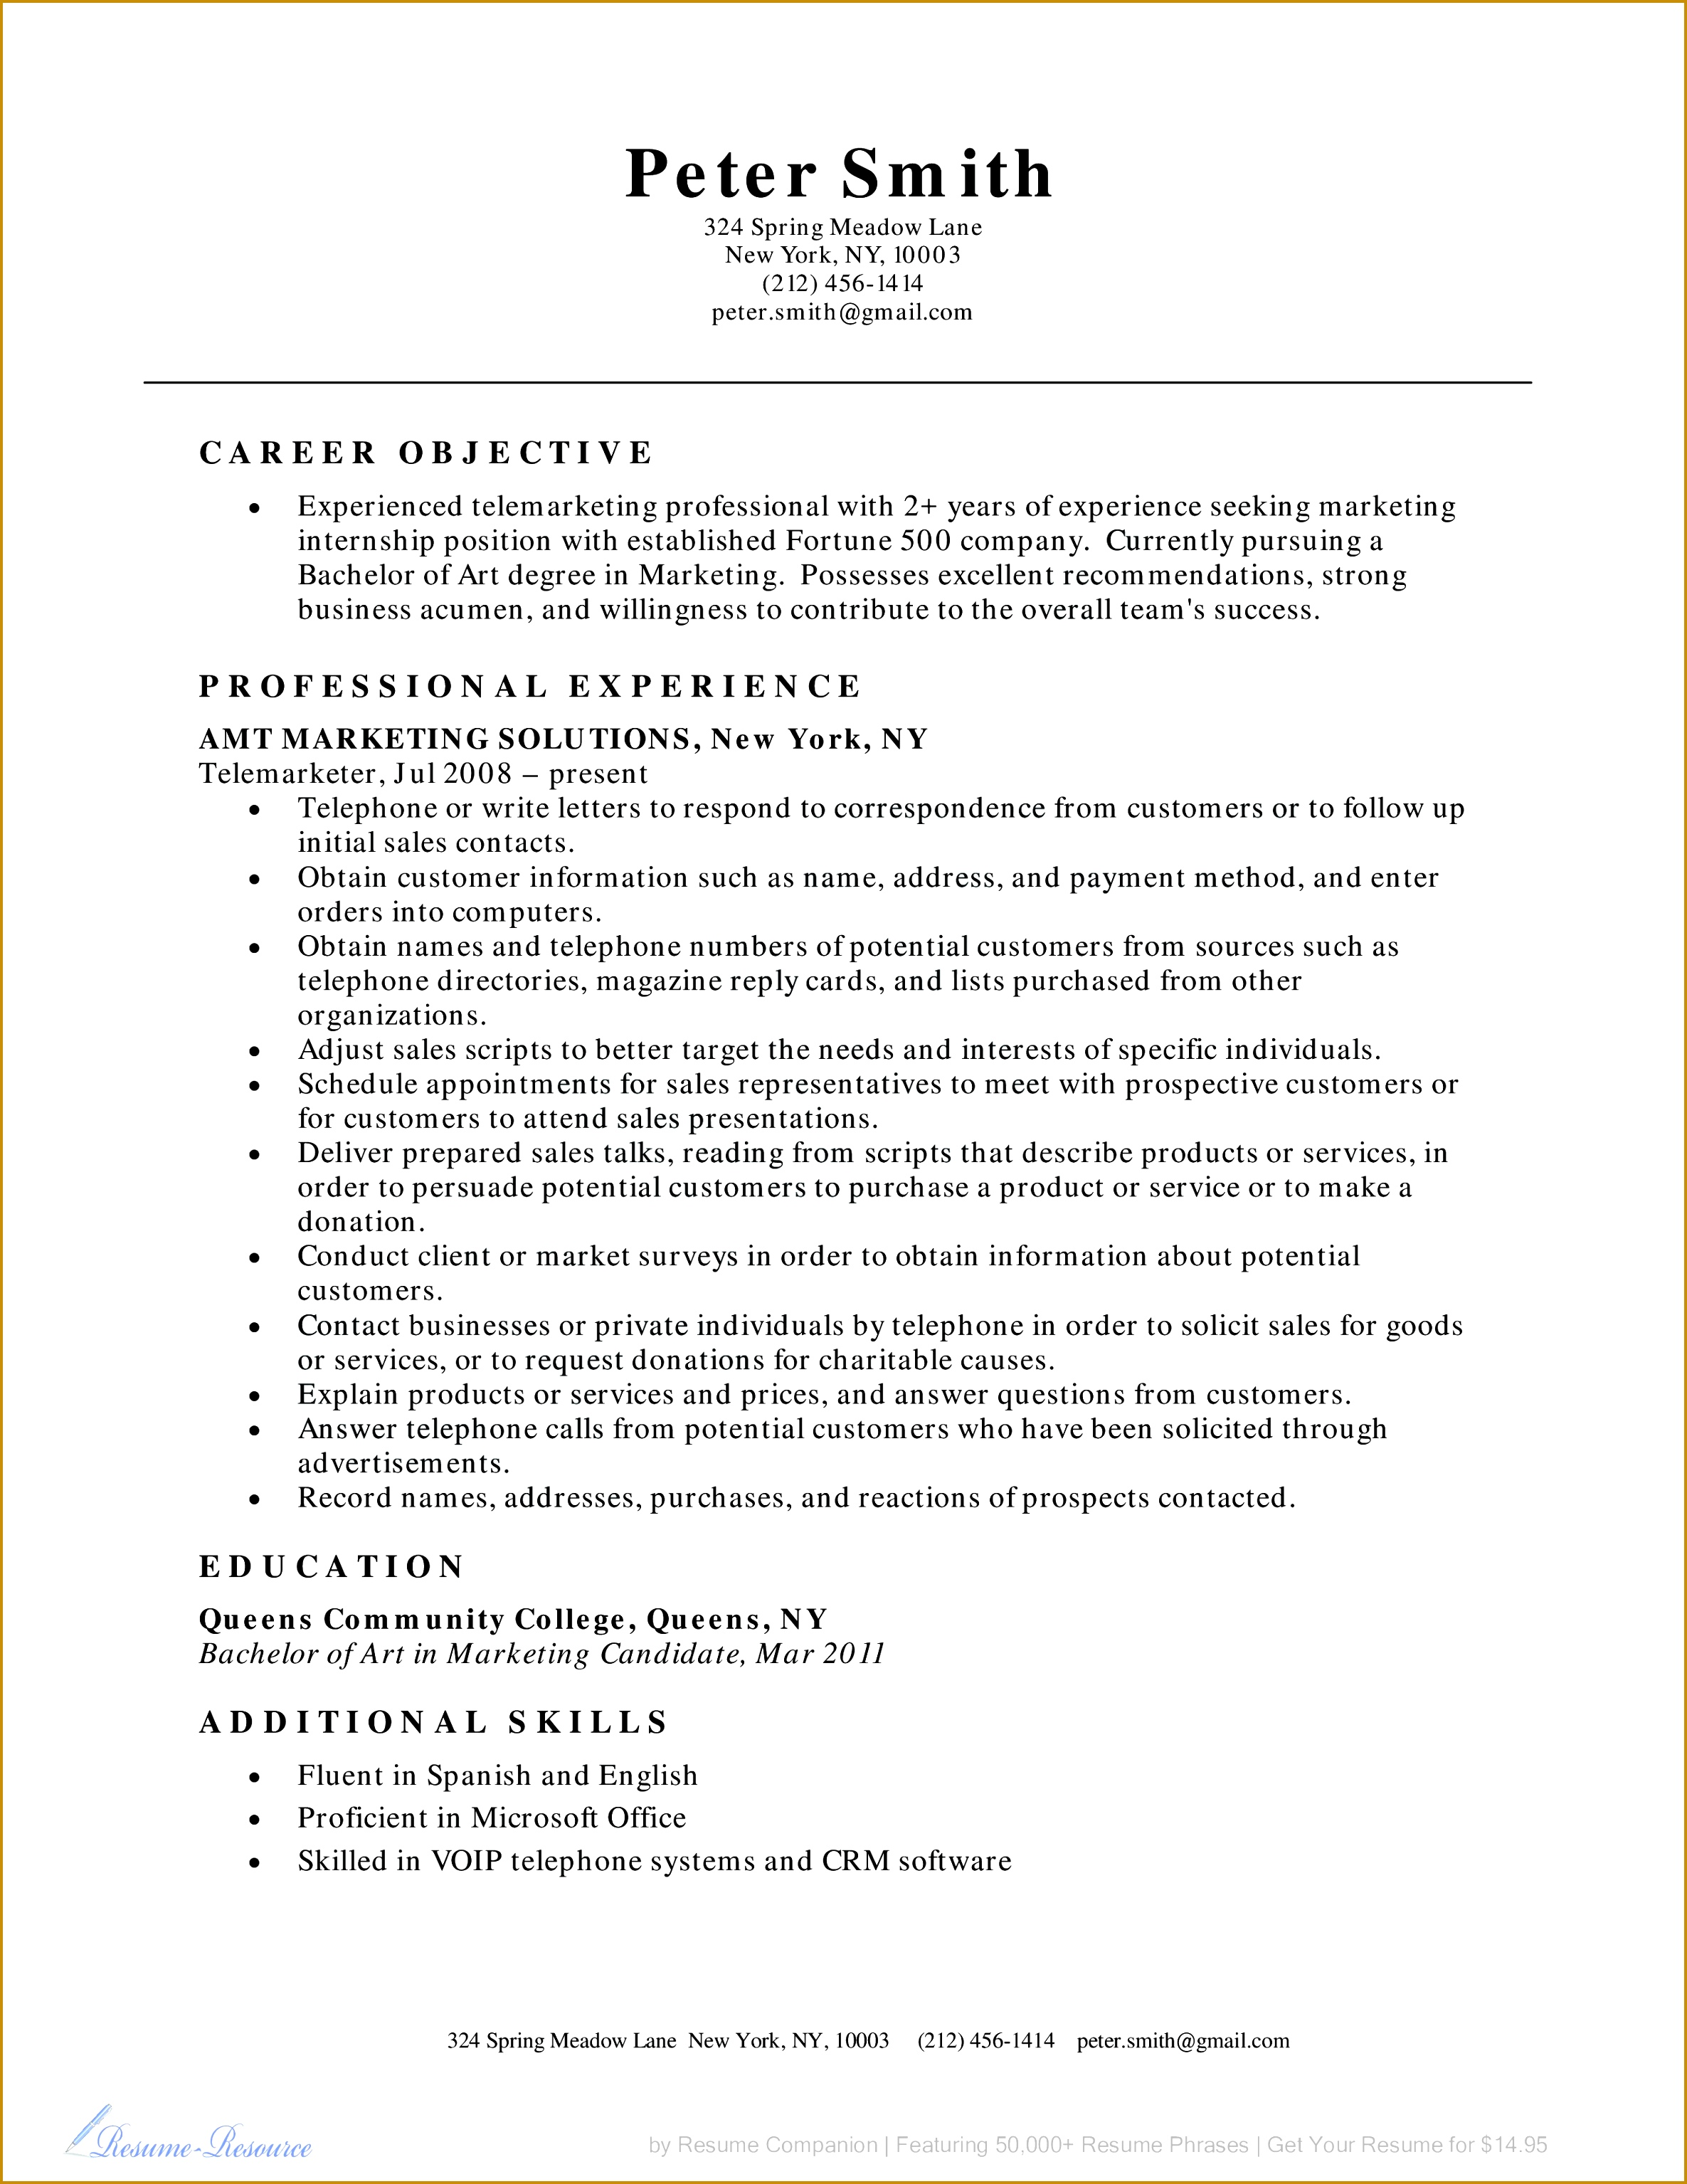 Resume for Teaching Profession Best Telemarketer Resume Example Business Resume Example 23713069